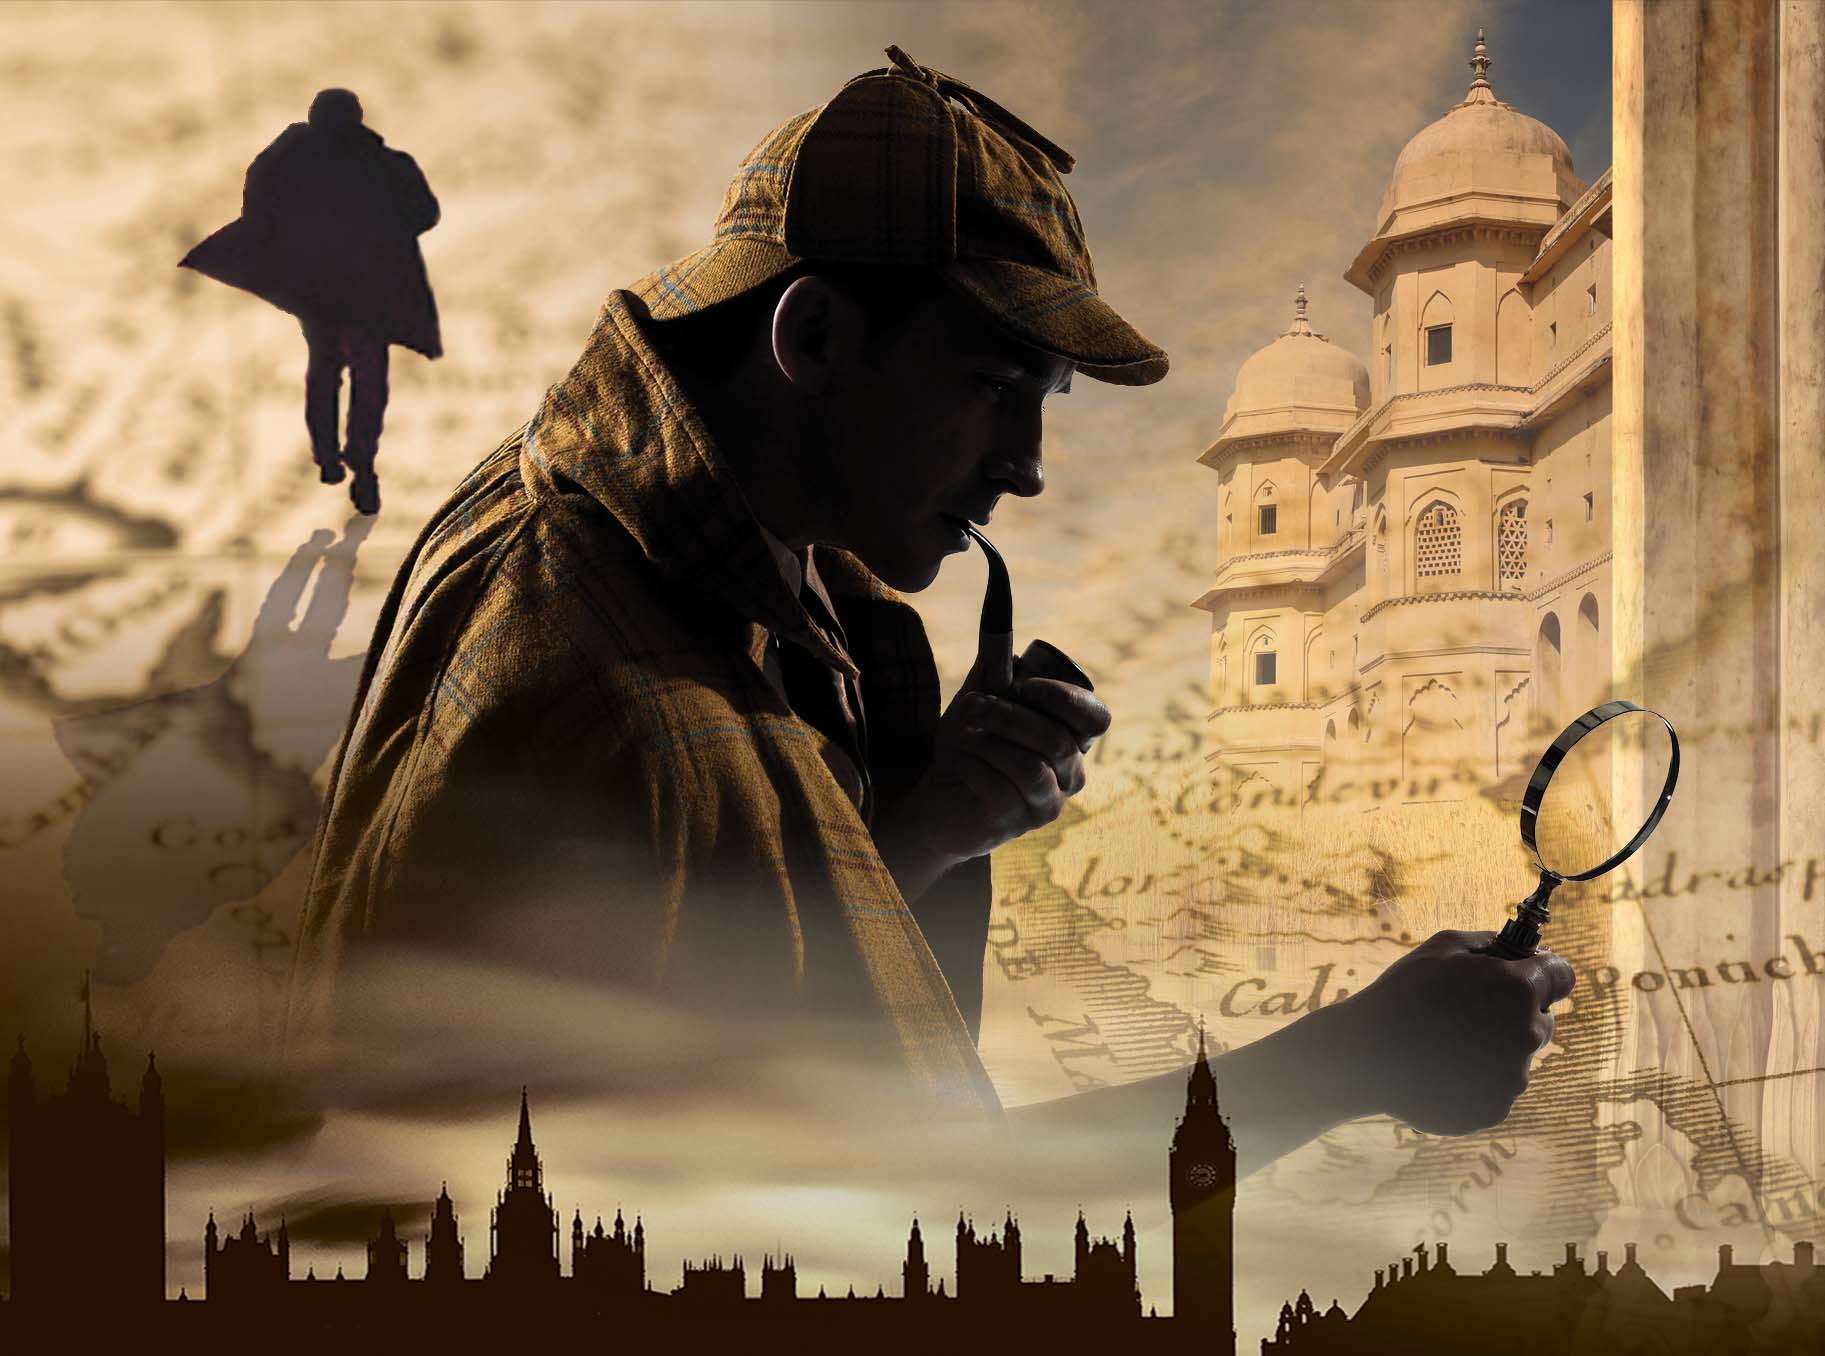 Sherlock-Holmes-Sign-of-Four-REV-layered